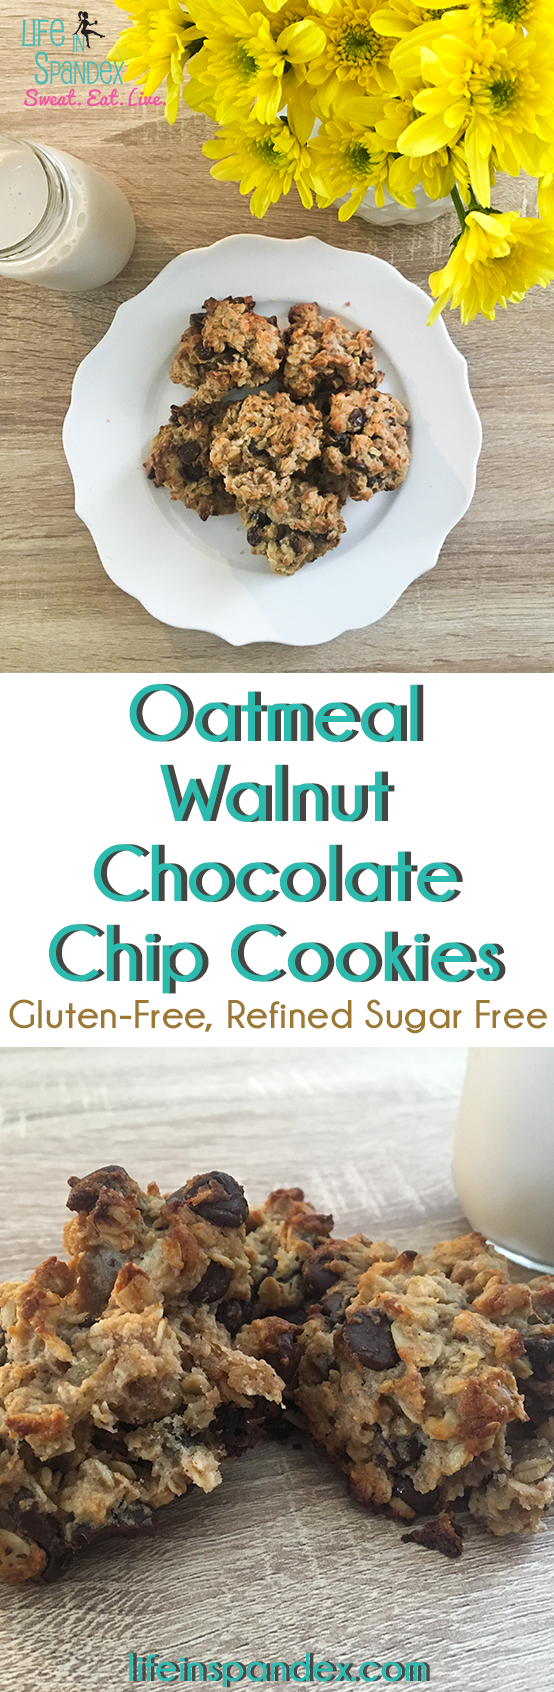 oatmeal walnut chocolate chip cookies pinterest